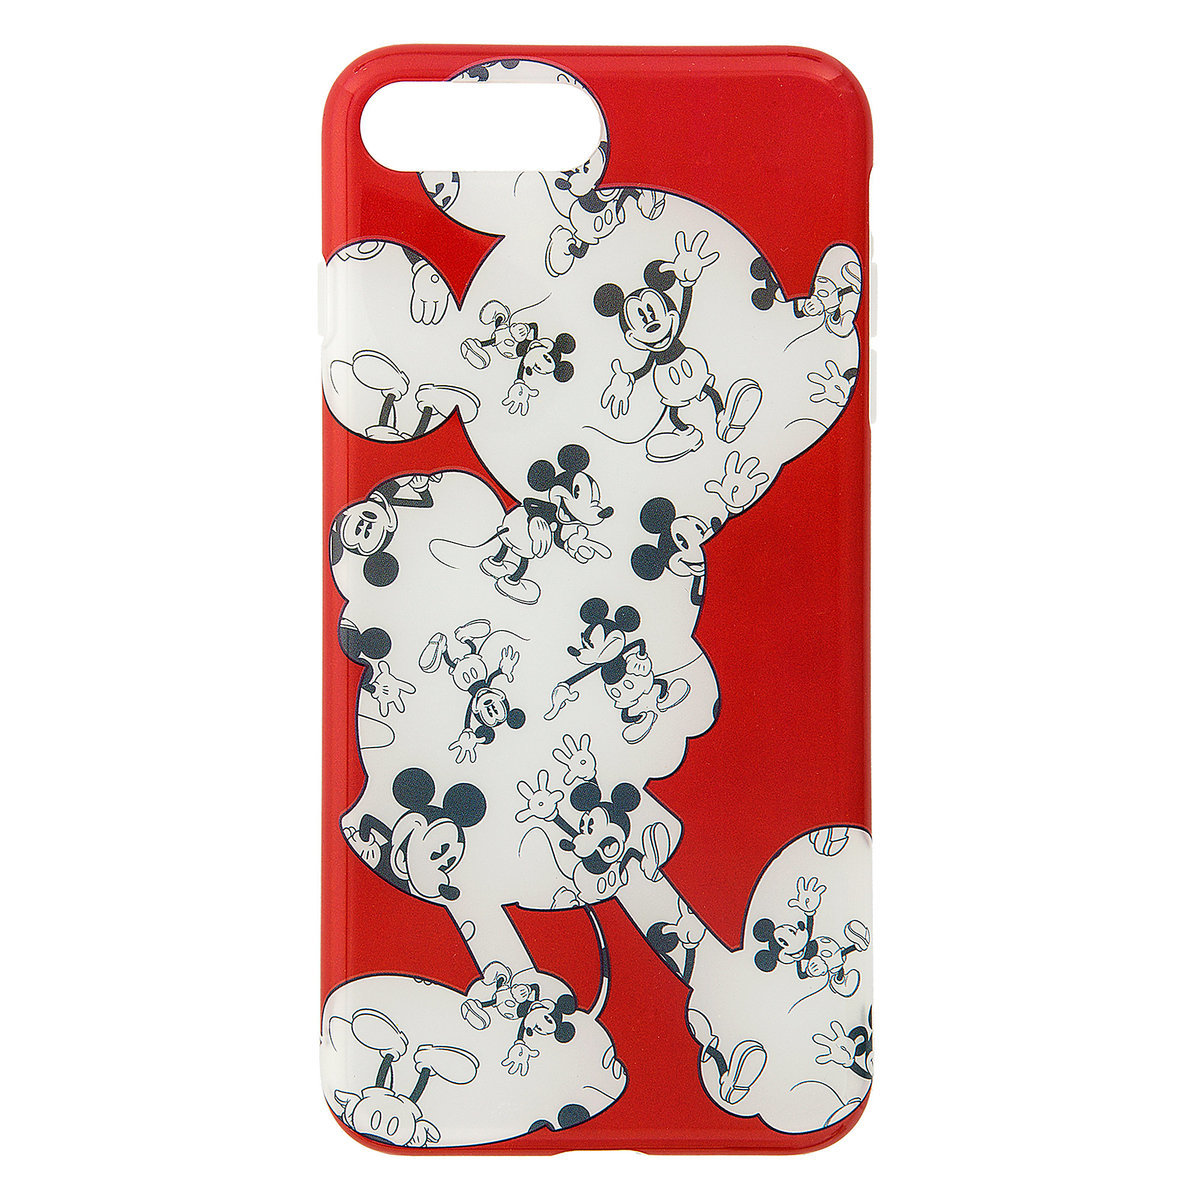 huge discount 1c7b2 5ae50 Disney iPhone 7/6/6S Plus Case - Timeless Mickey Mouse - Red